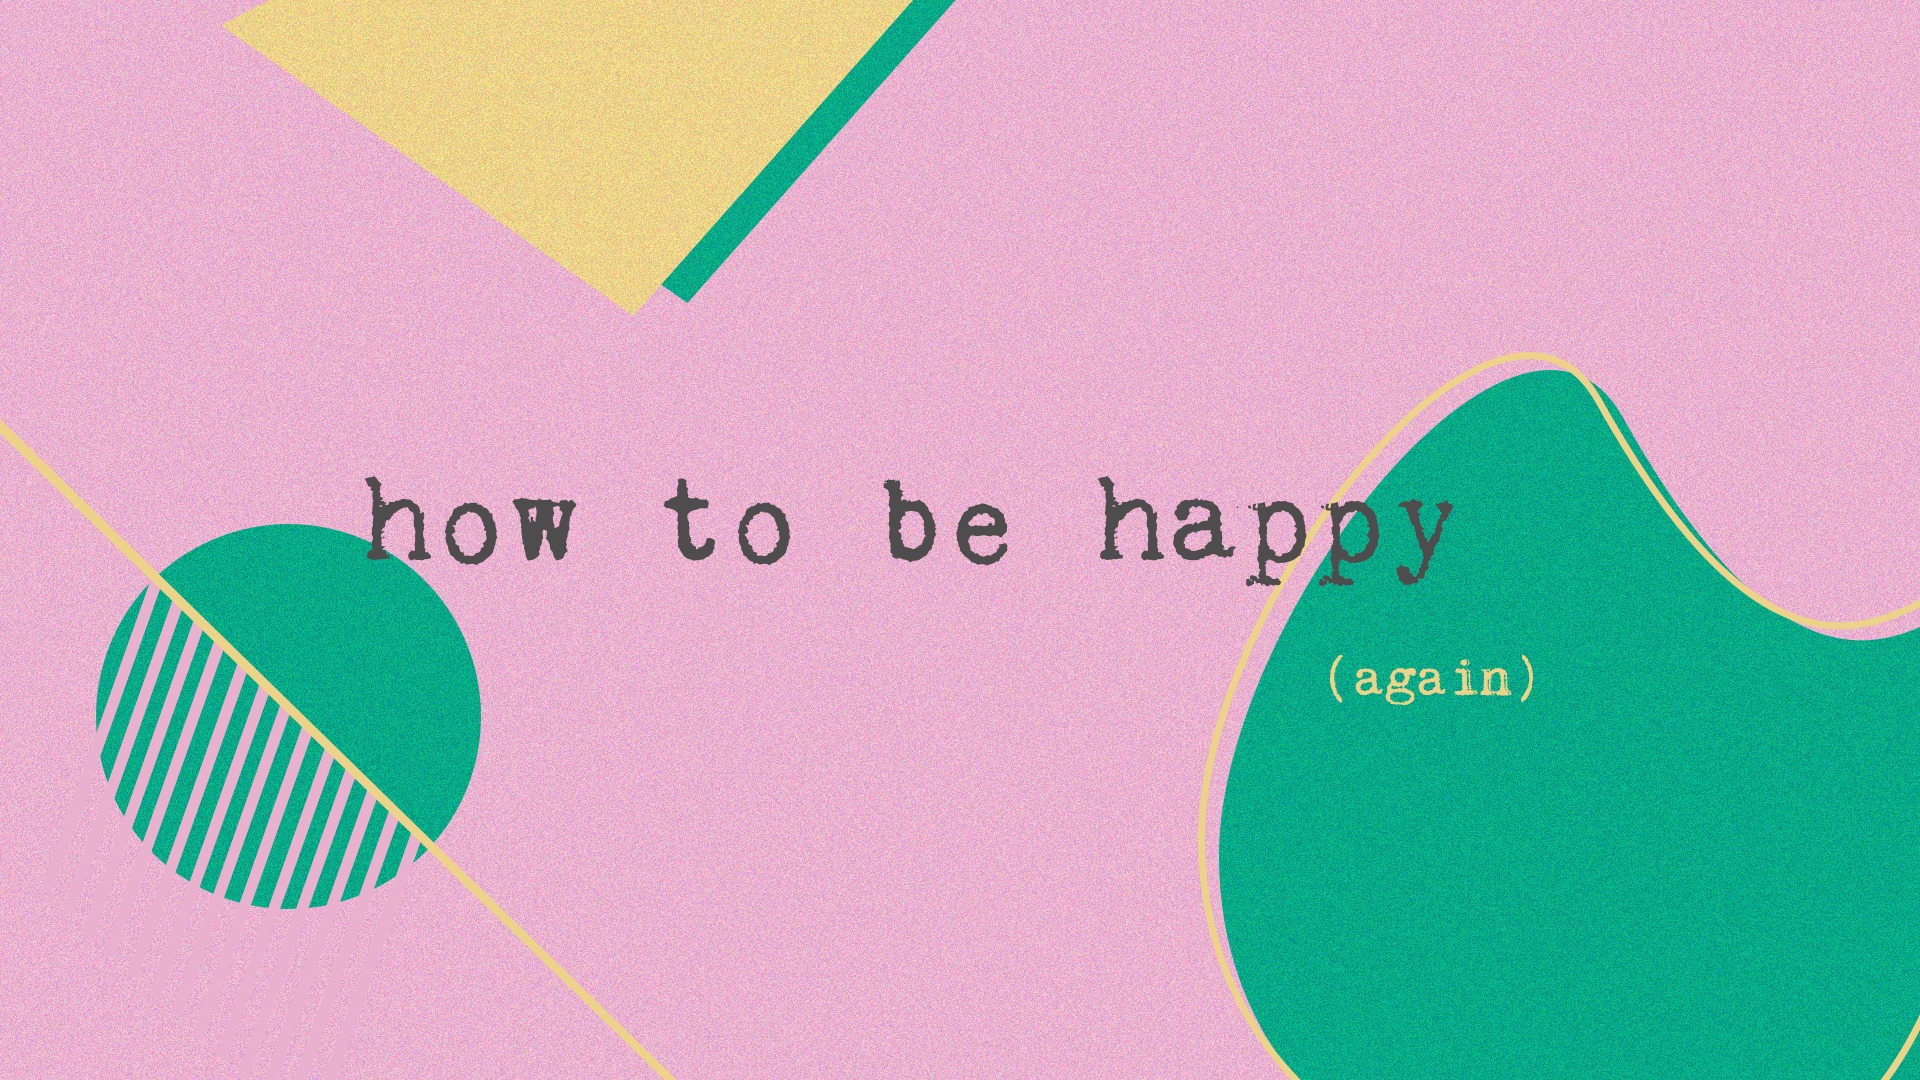 How to Be Happy Again.jpg